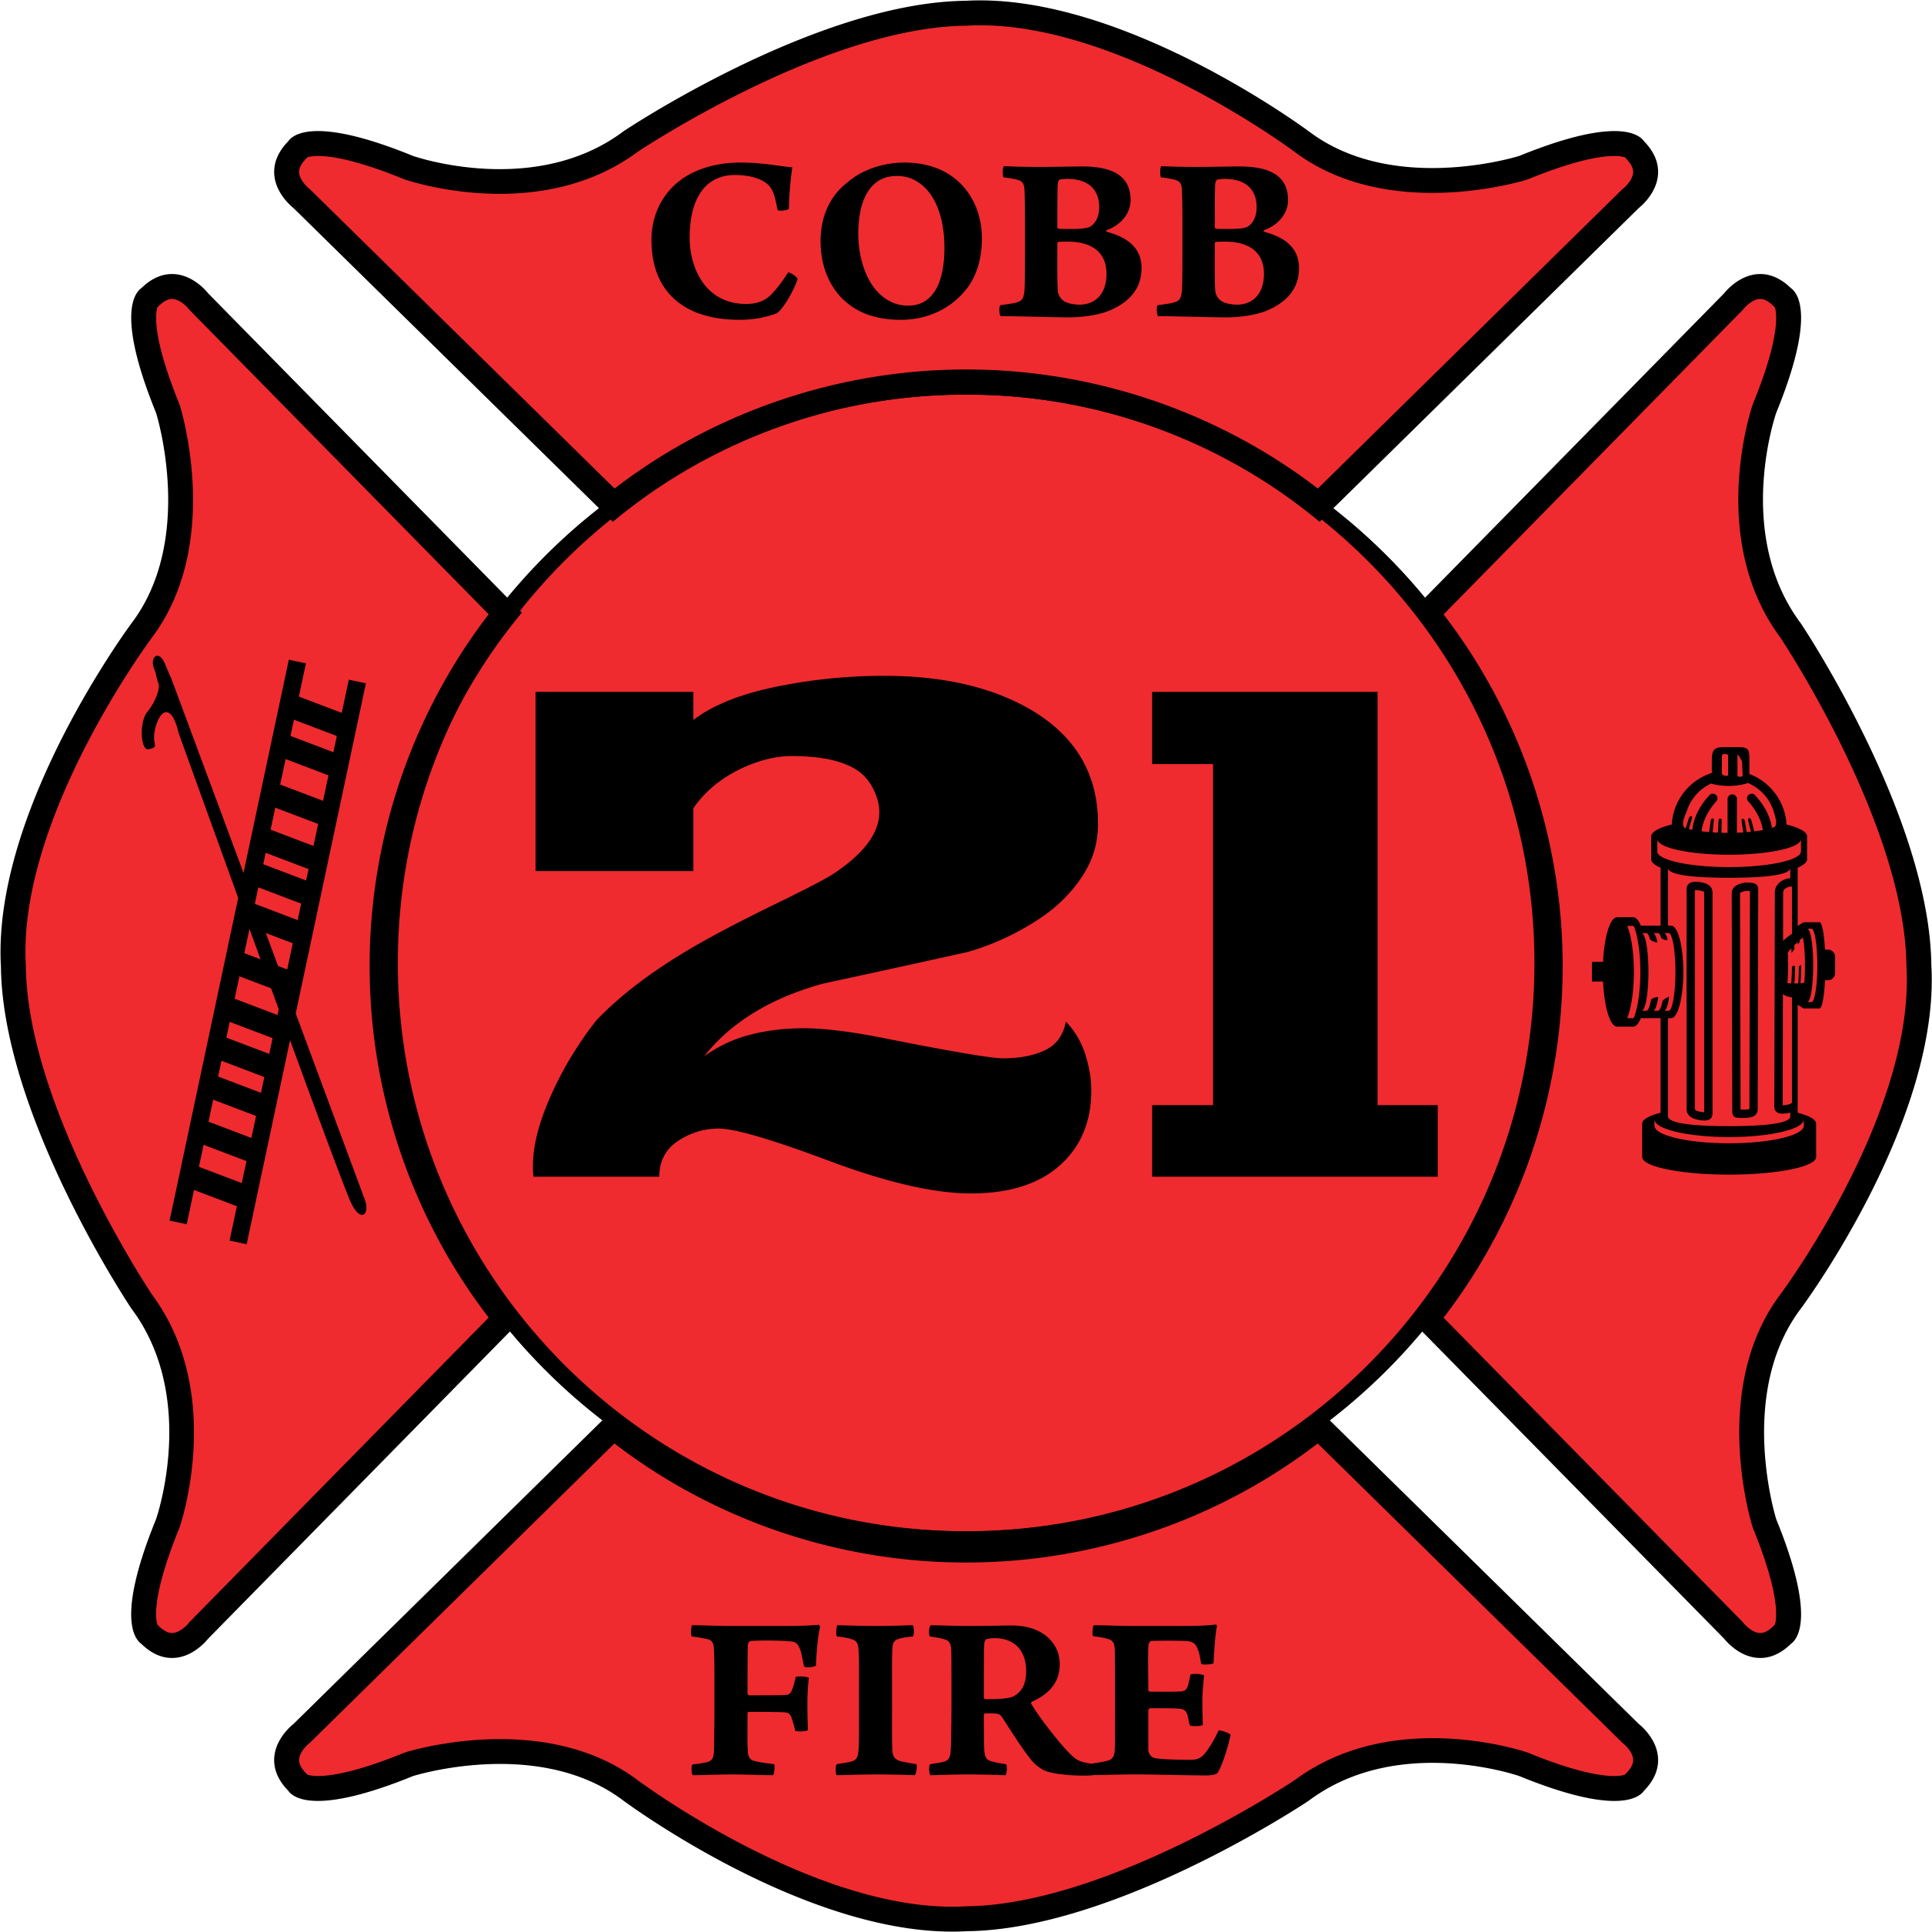 Cobb County Station 21 Stickers By Thelosthosecompany Design By Humans Cobb County Firefighter Stickers Cobb